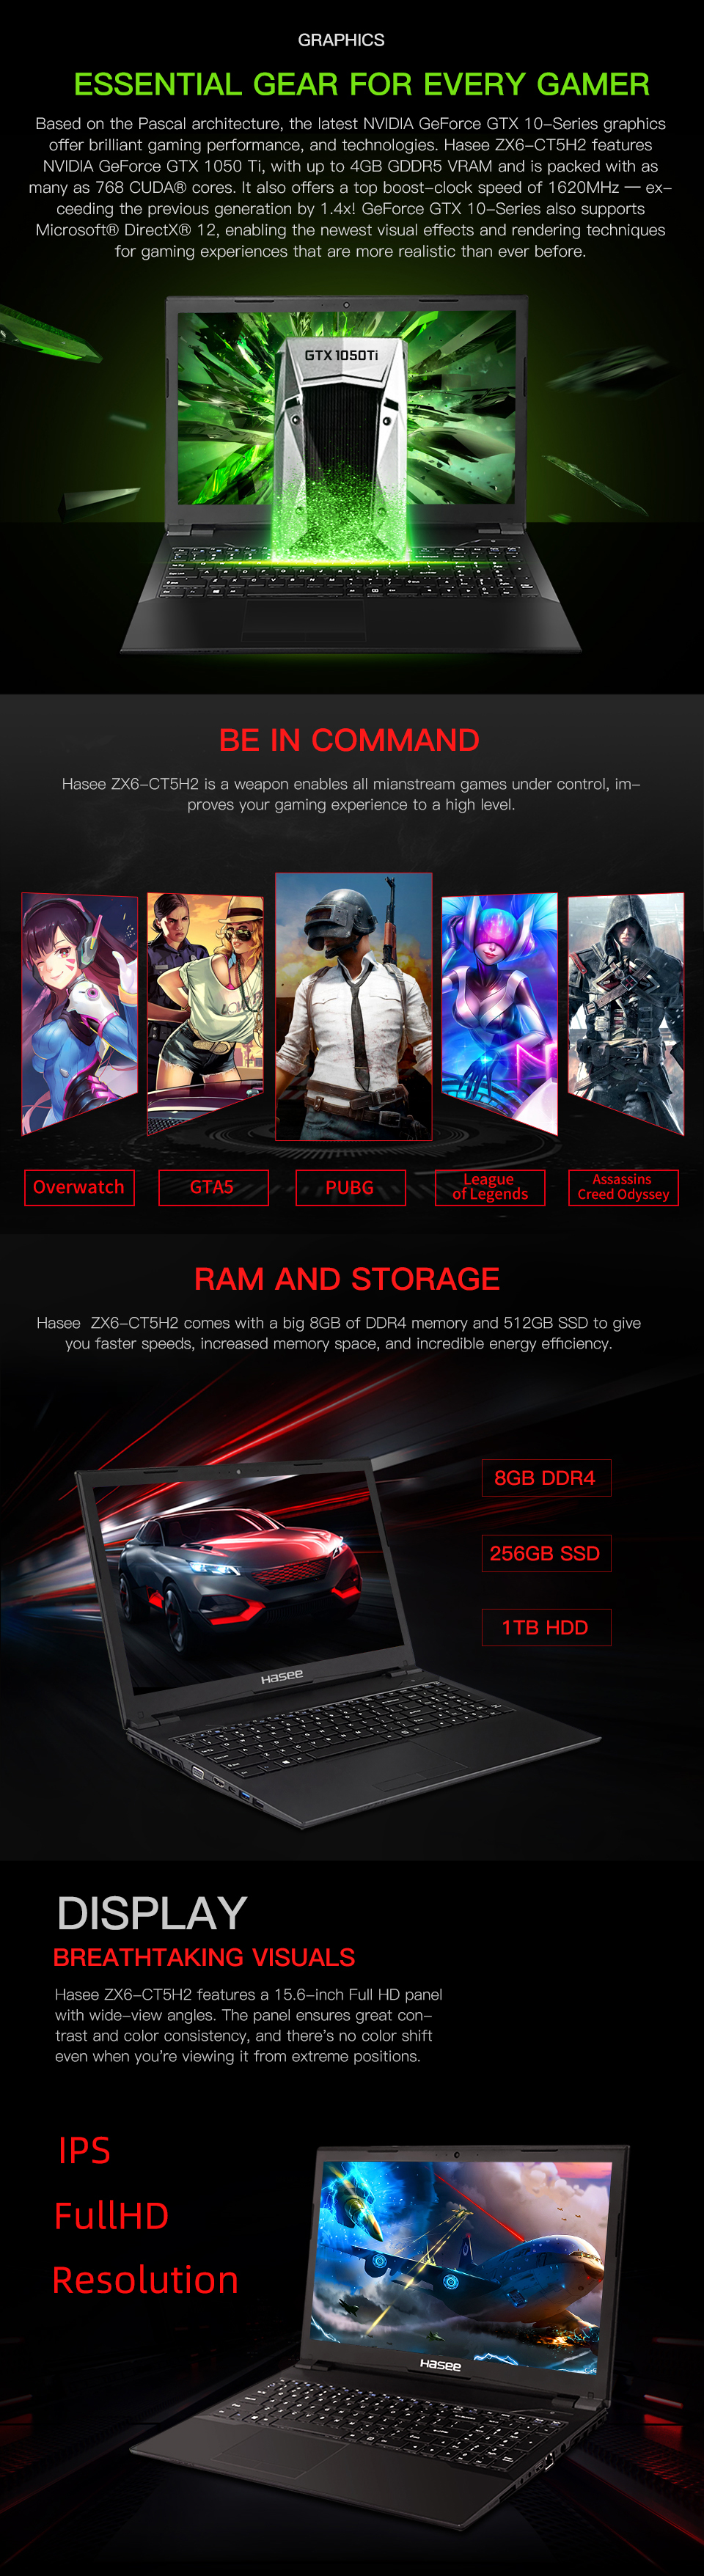 Hasee ZX6-CT5H2 Laptop for Gaming(Intel Core I5-9400+GTX 1050Ti/8GB RAM/256G SSD+1THDD/15.6''IPS  45%NTSC)Hasee Desktop-grade